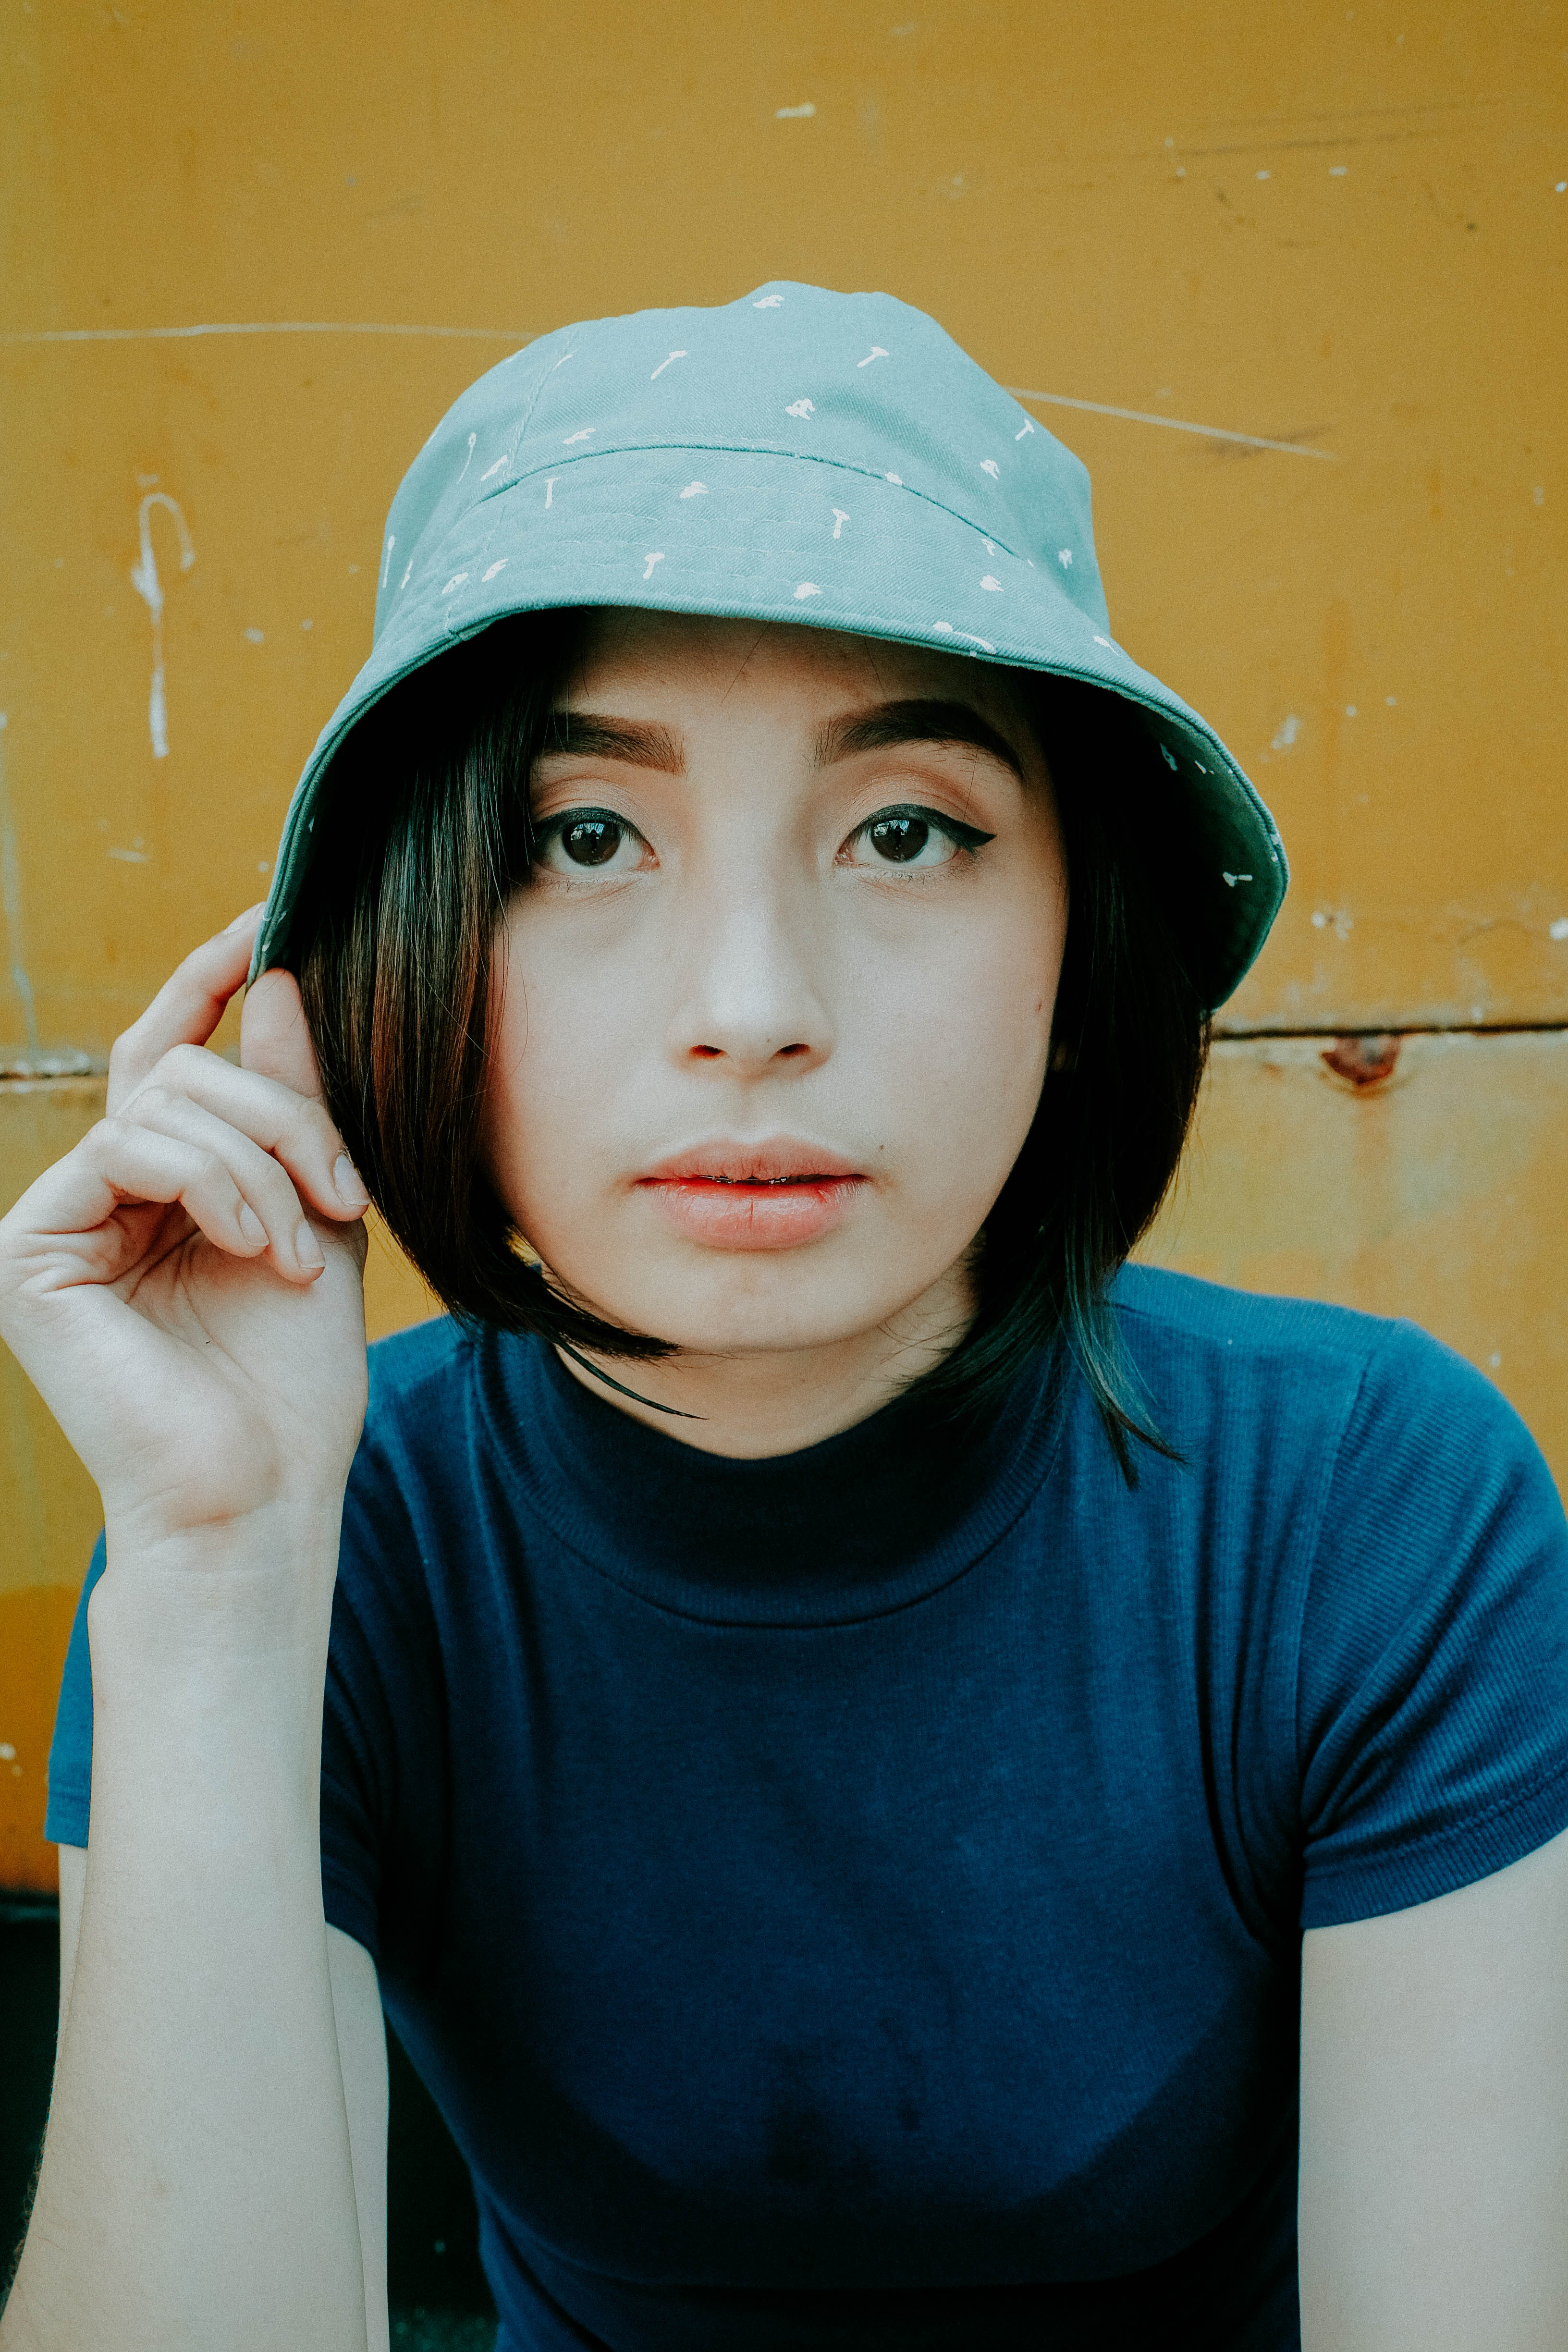 Shallow Focus Photo of Woman Wearing Gray Bucket Hat